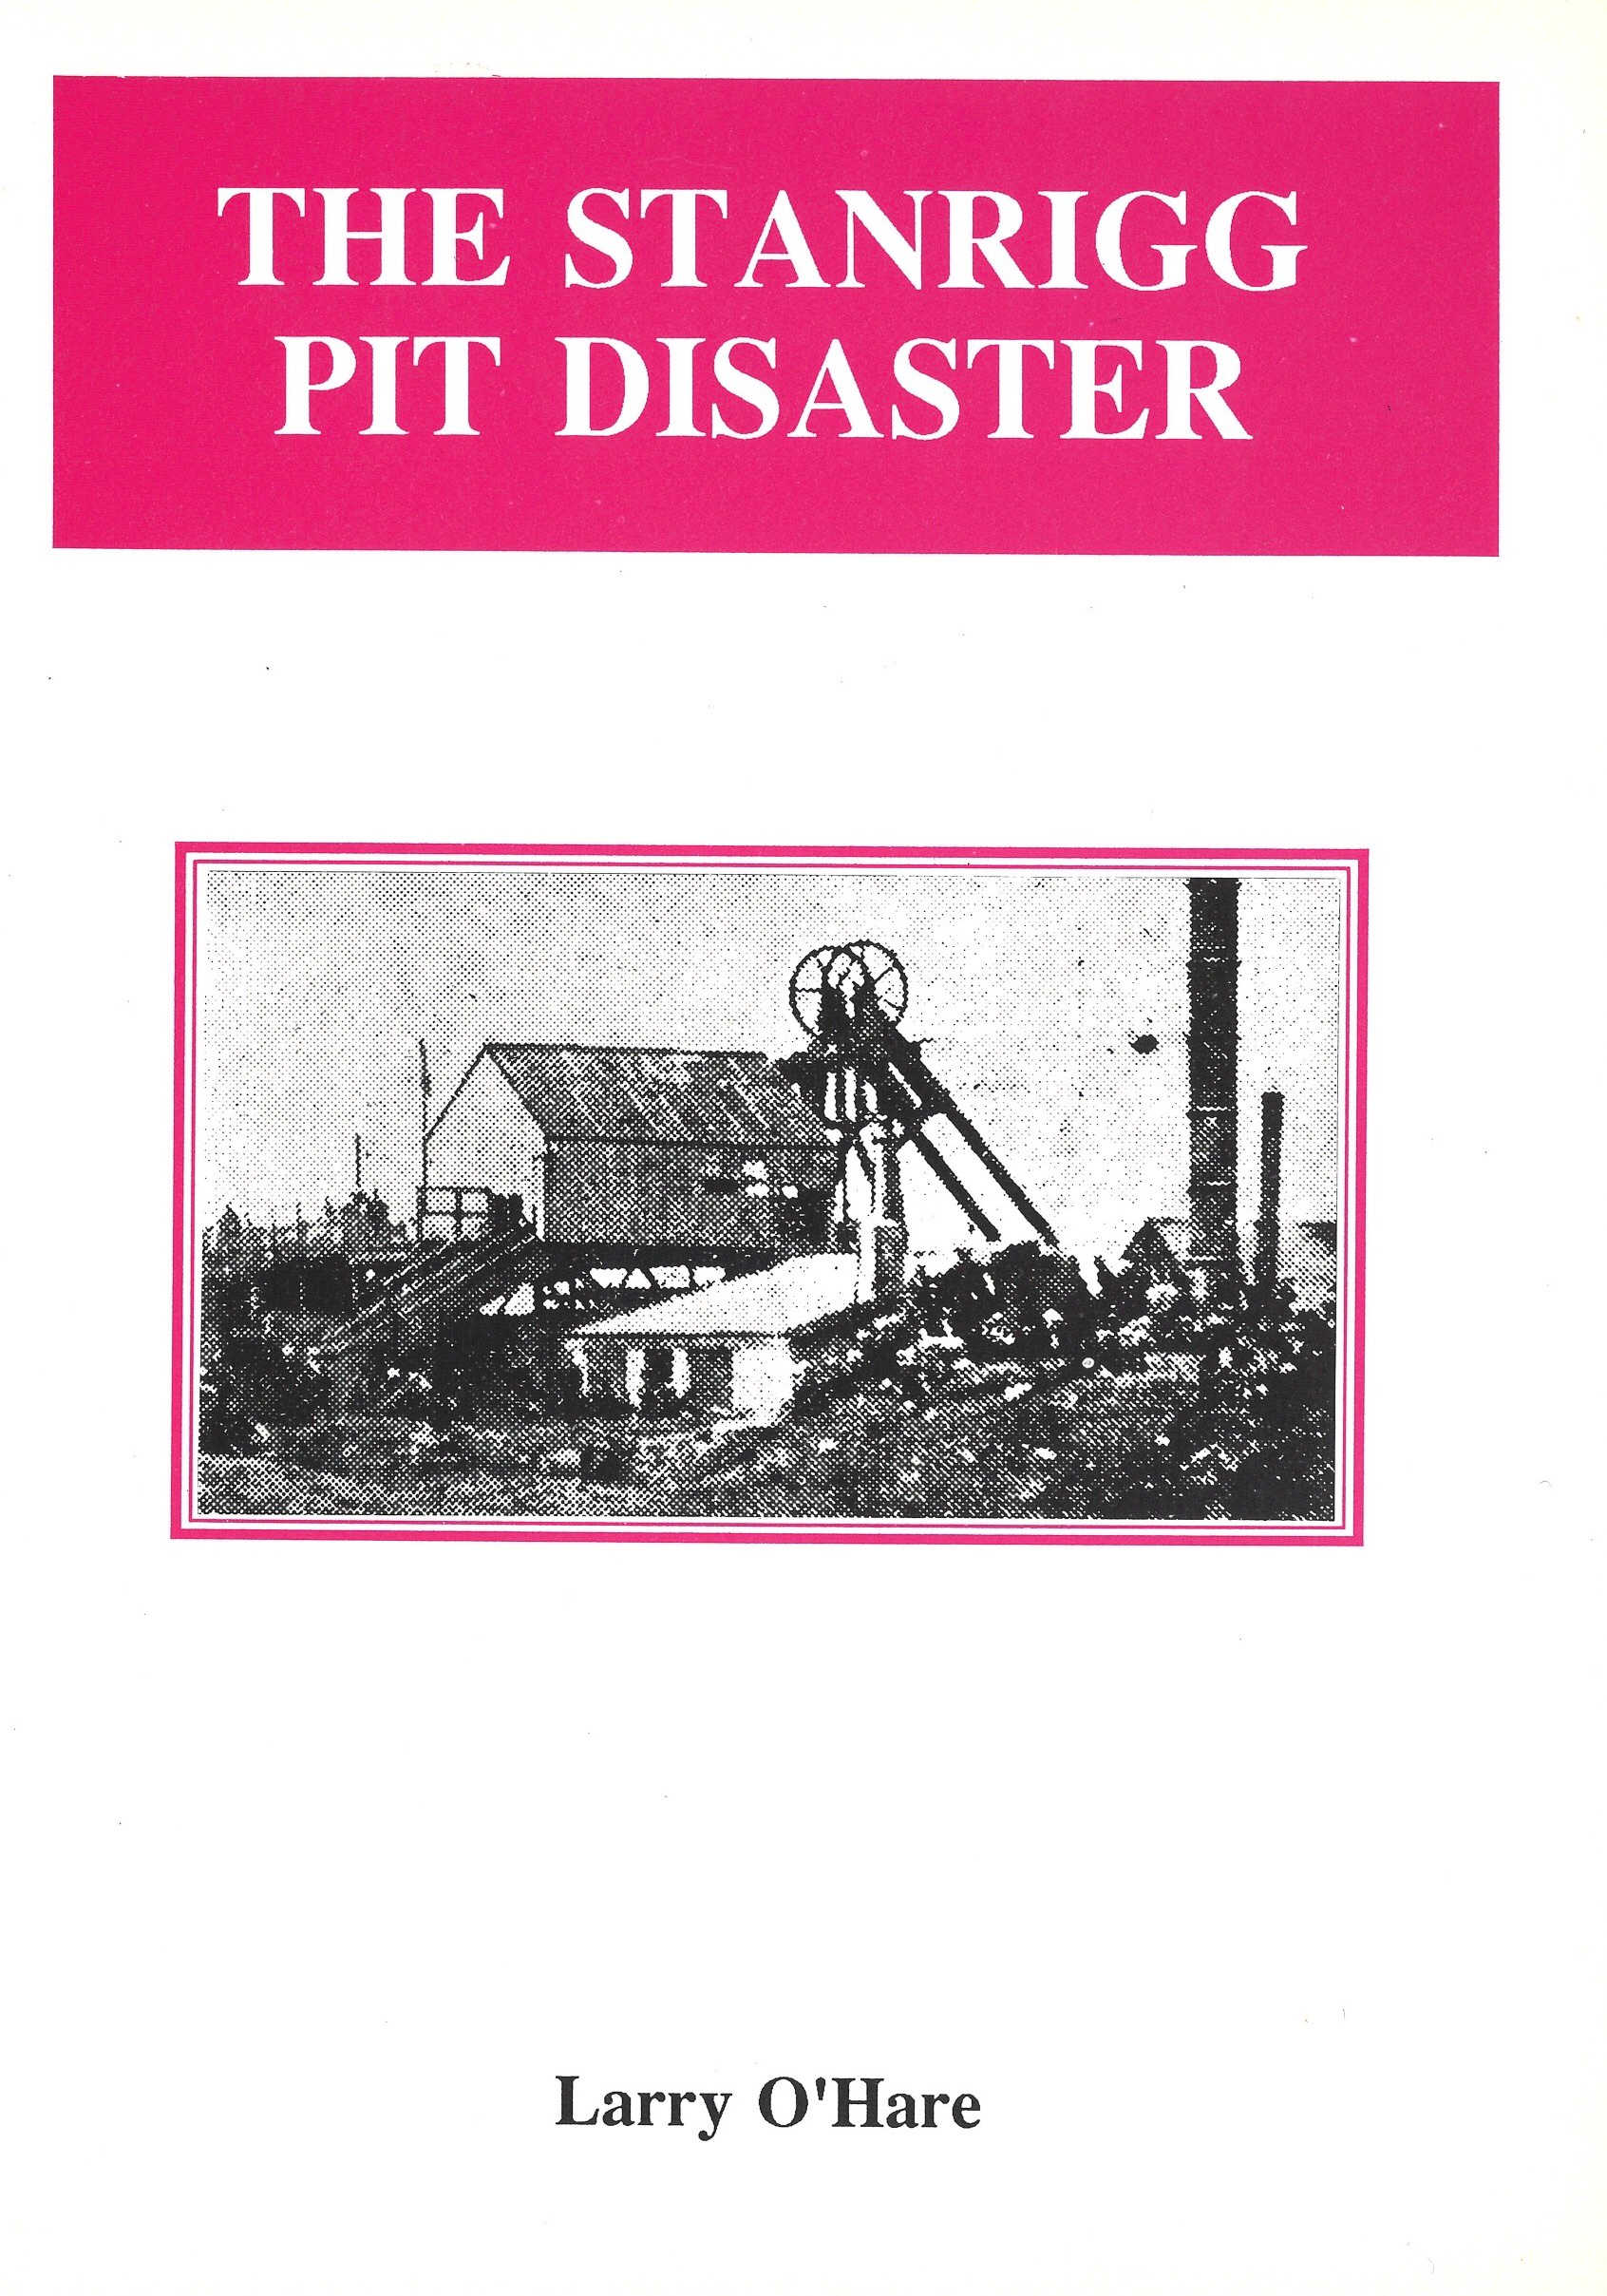 The Stanrigg Pit Disaster